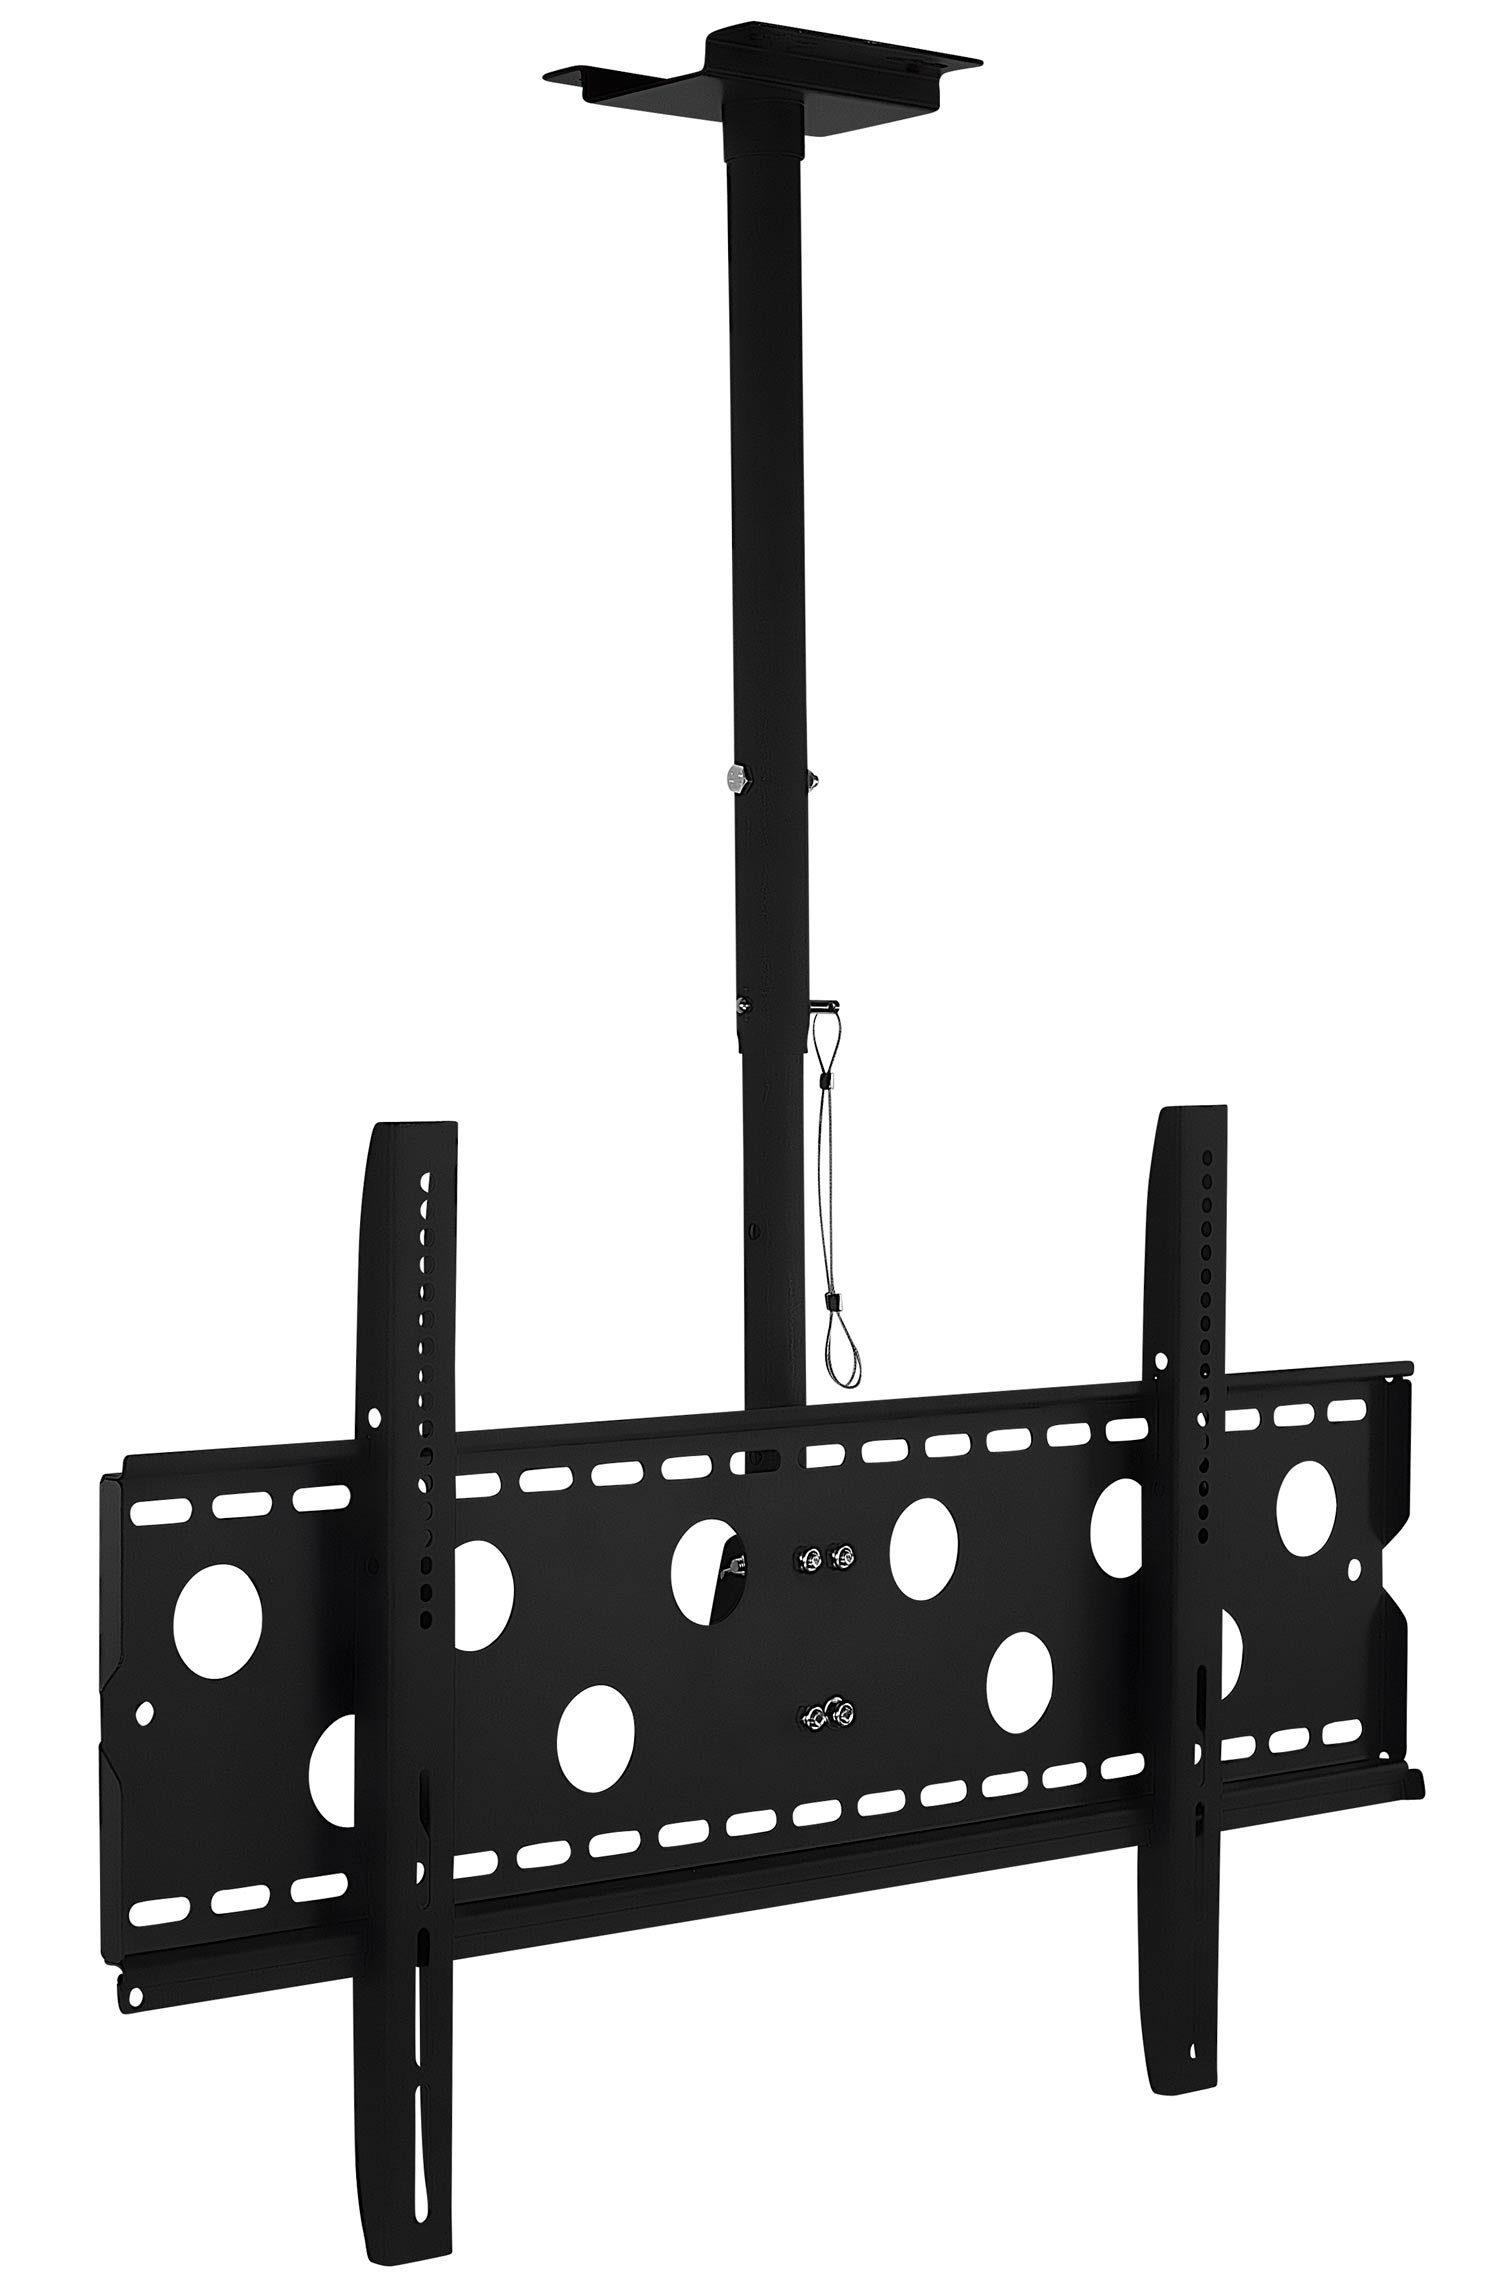 Mount-It! TV Ceiling Mount, Full Motion Height Adjustable Swivel Tilting Bracket For 42, 45, 47, 49, 50, 55, 60, 65, 70, 75, 80, 85, 90 Inch, TVs 220 Lbs Capacity